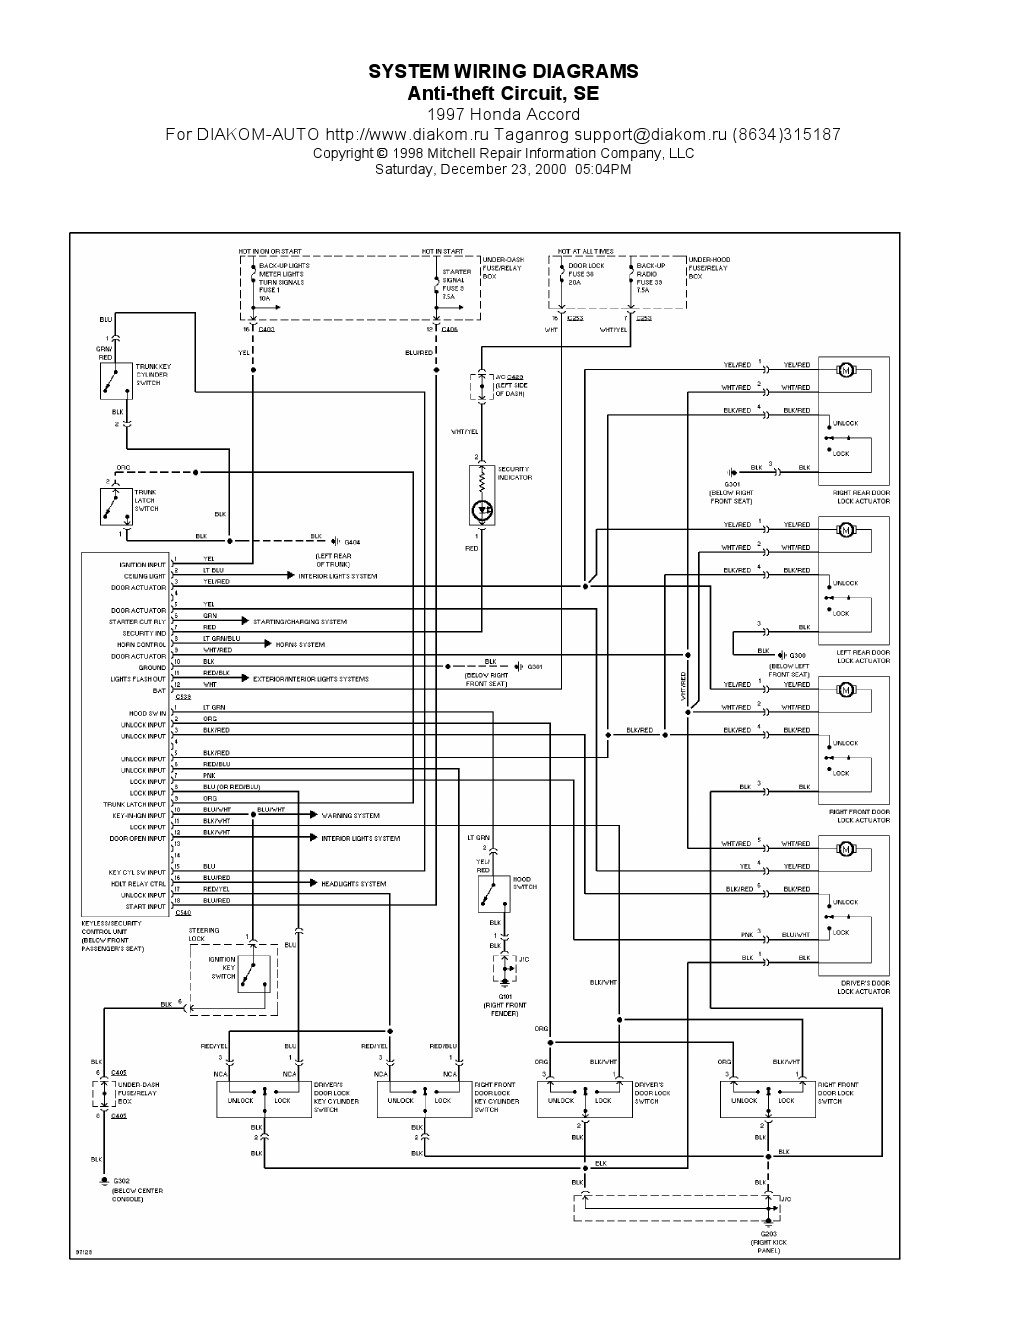 1997 honda accord wiring diagram pdf